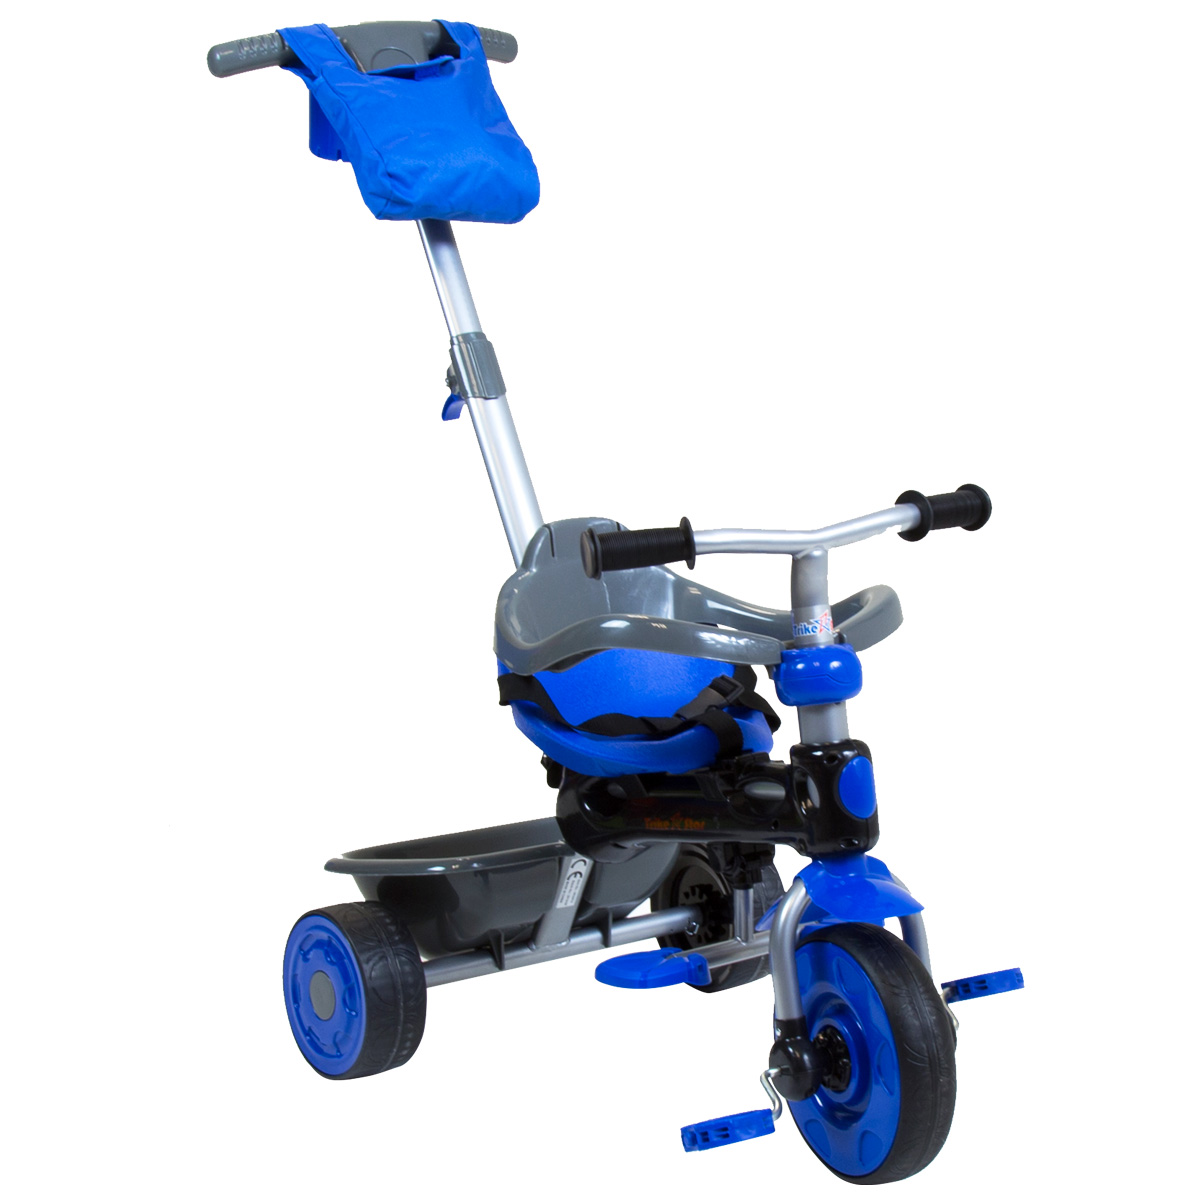 Trikestar-Deluxe-4-In-1-Pedal-Trike-Canopy-  sc 1 st  eBay & Trikestar Deluxe 4 In 1 Pedal Trike Canopy Purple Red Green and ...